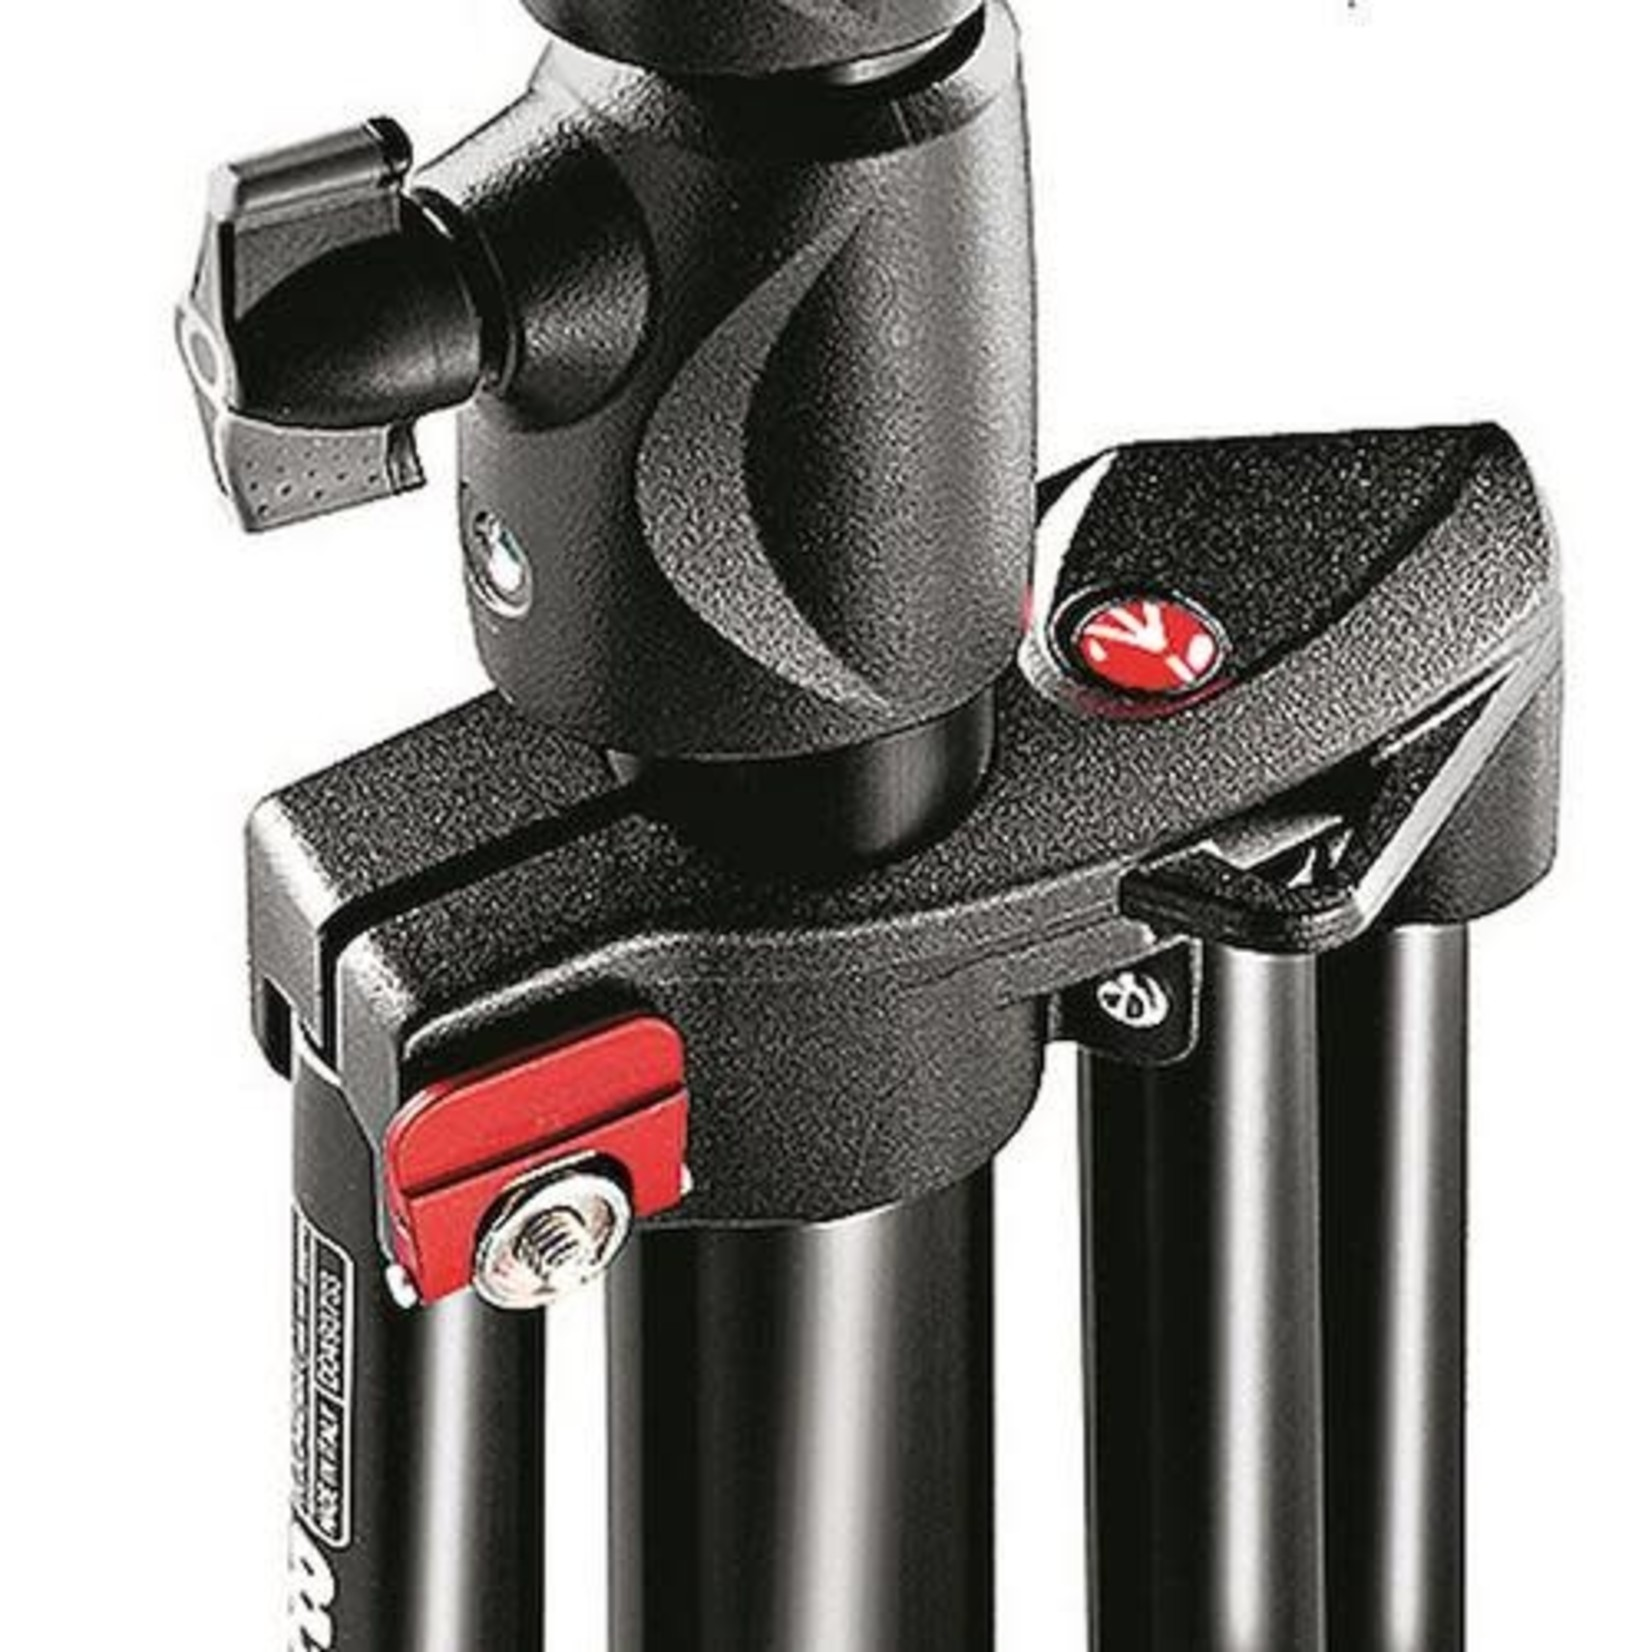 Manfrotto Manfrotto Backdrop Support Set